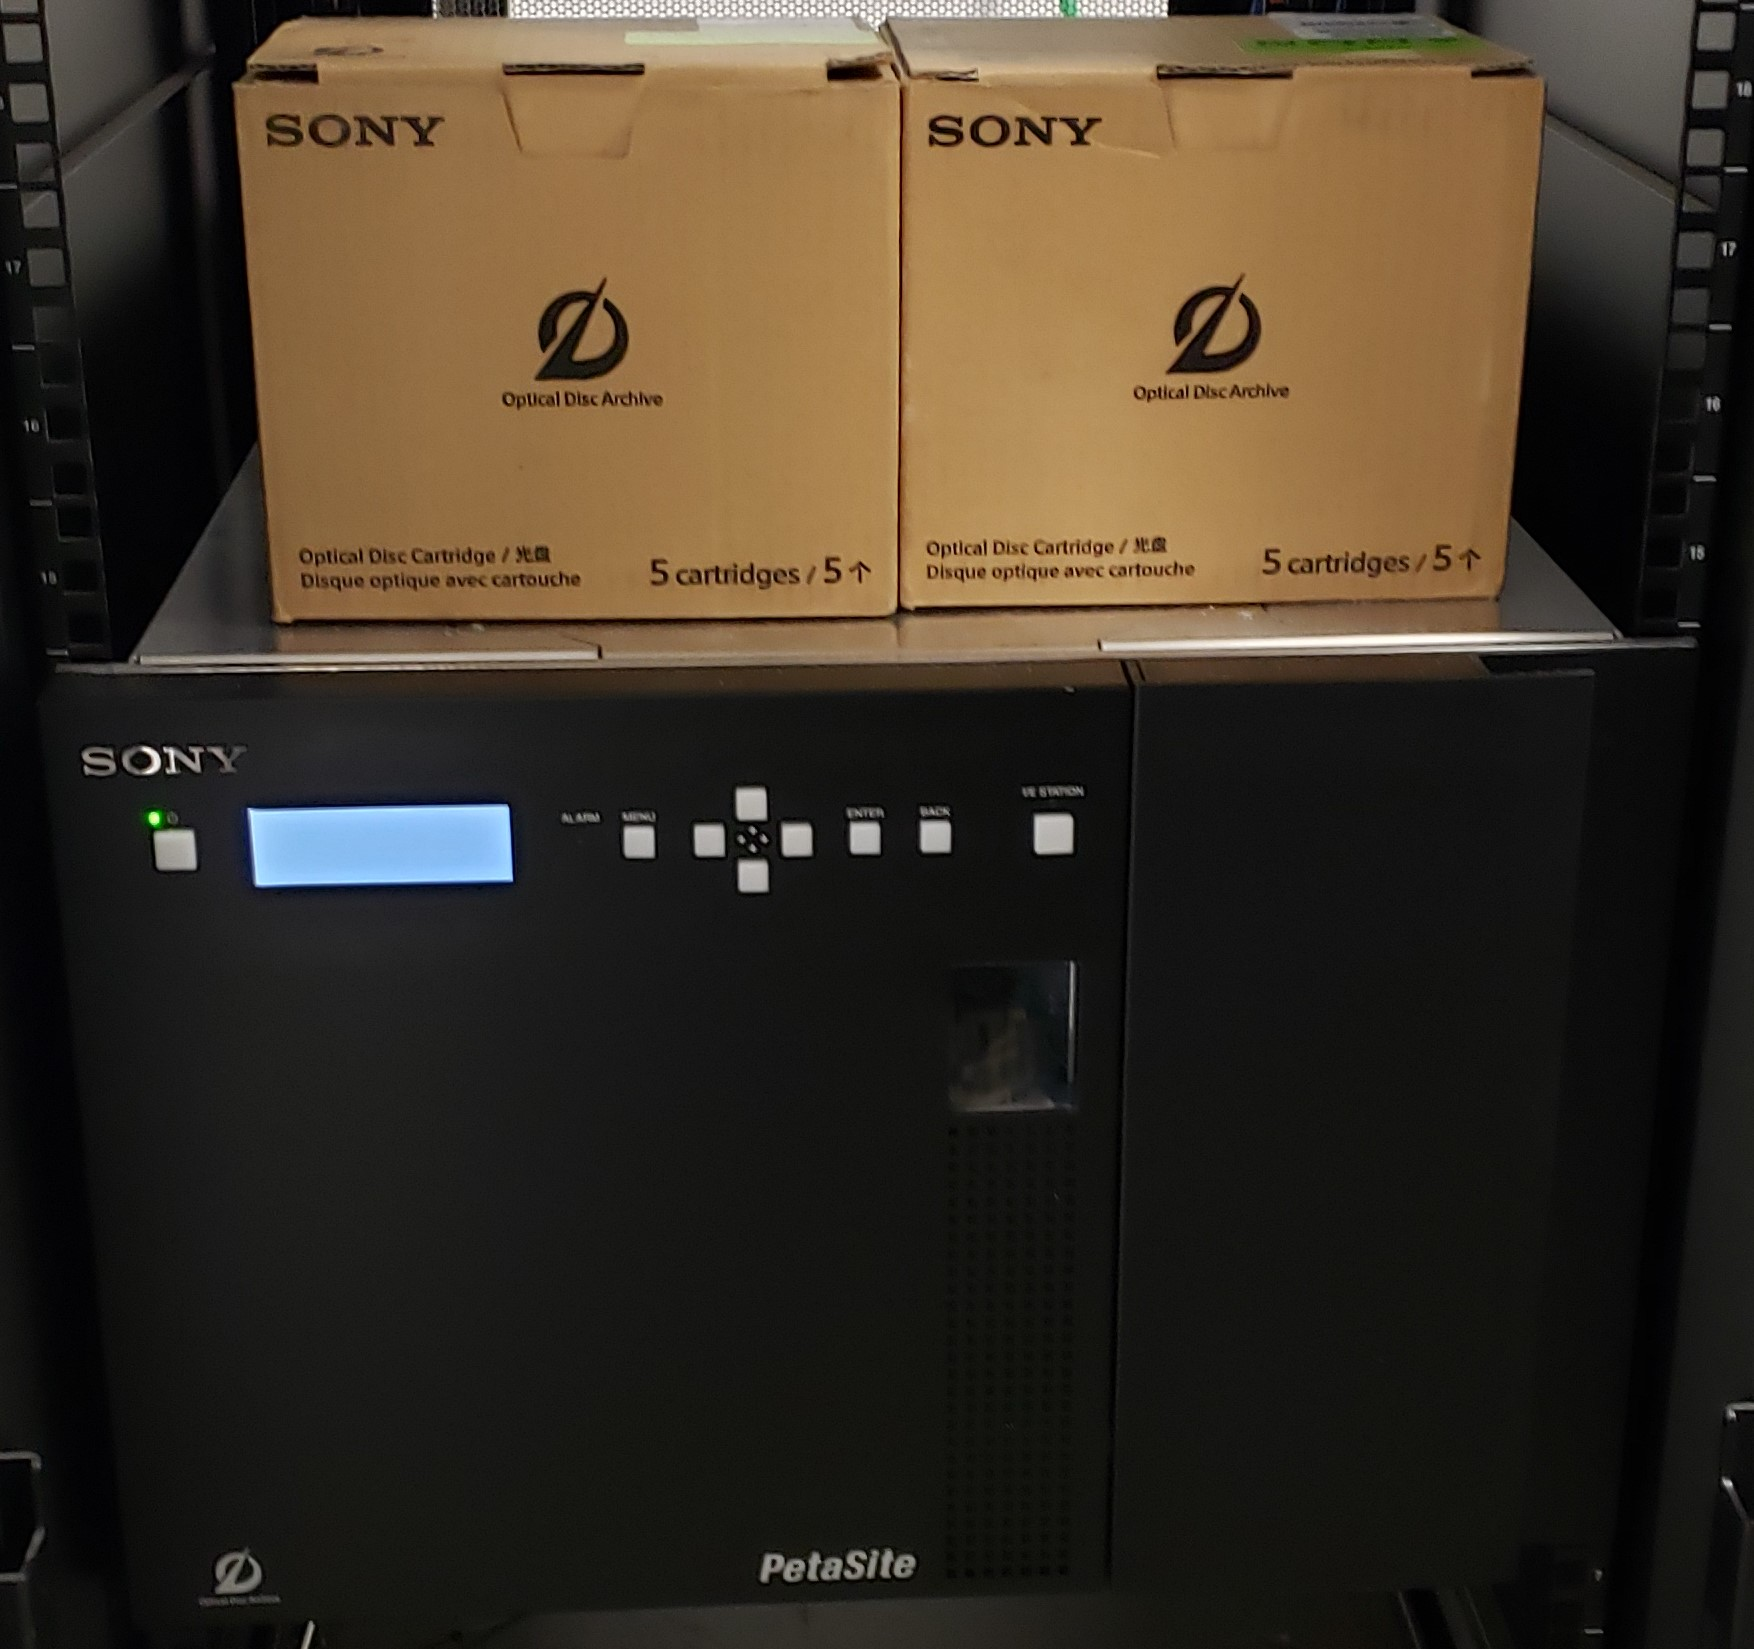 Sony's Optical Disc Archive Easily Stores and Secures Montclair State University's Most Important Content